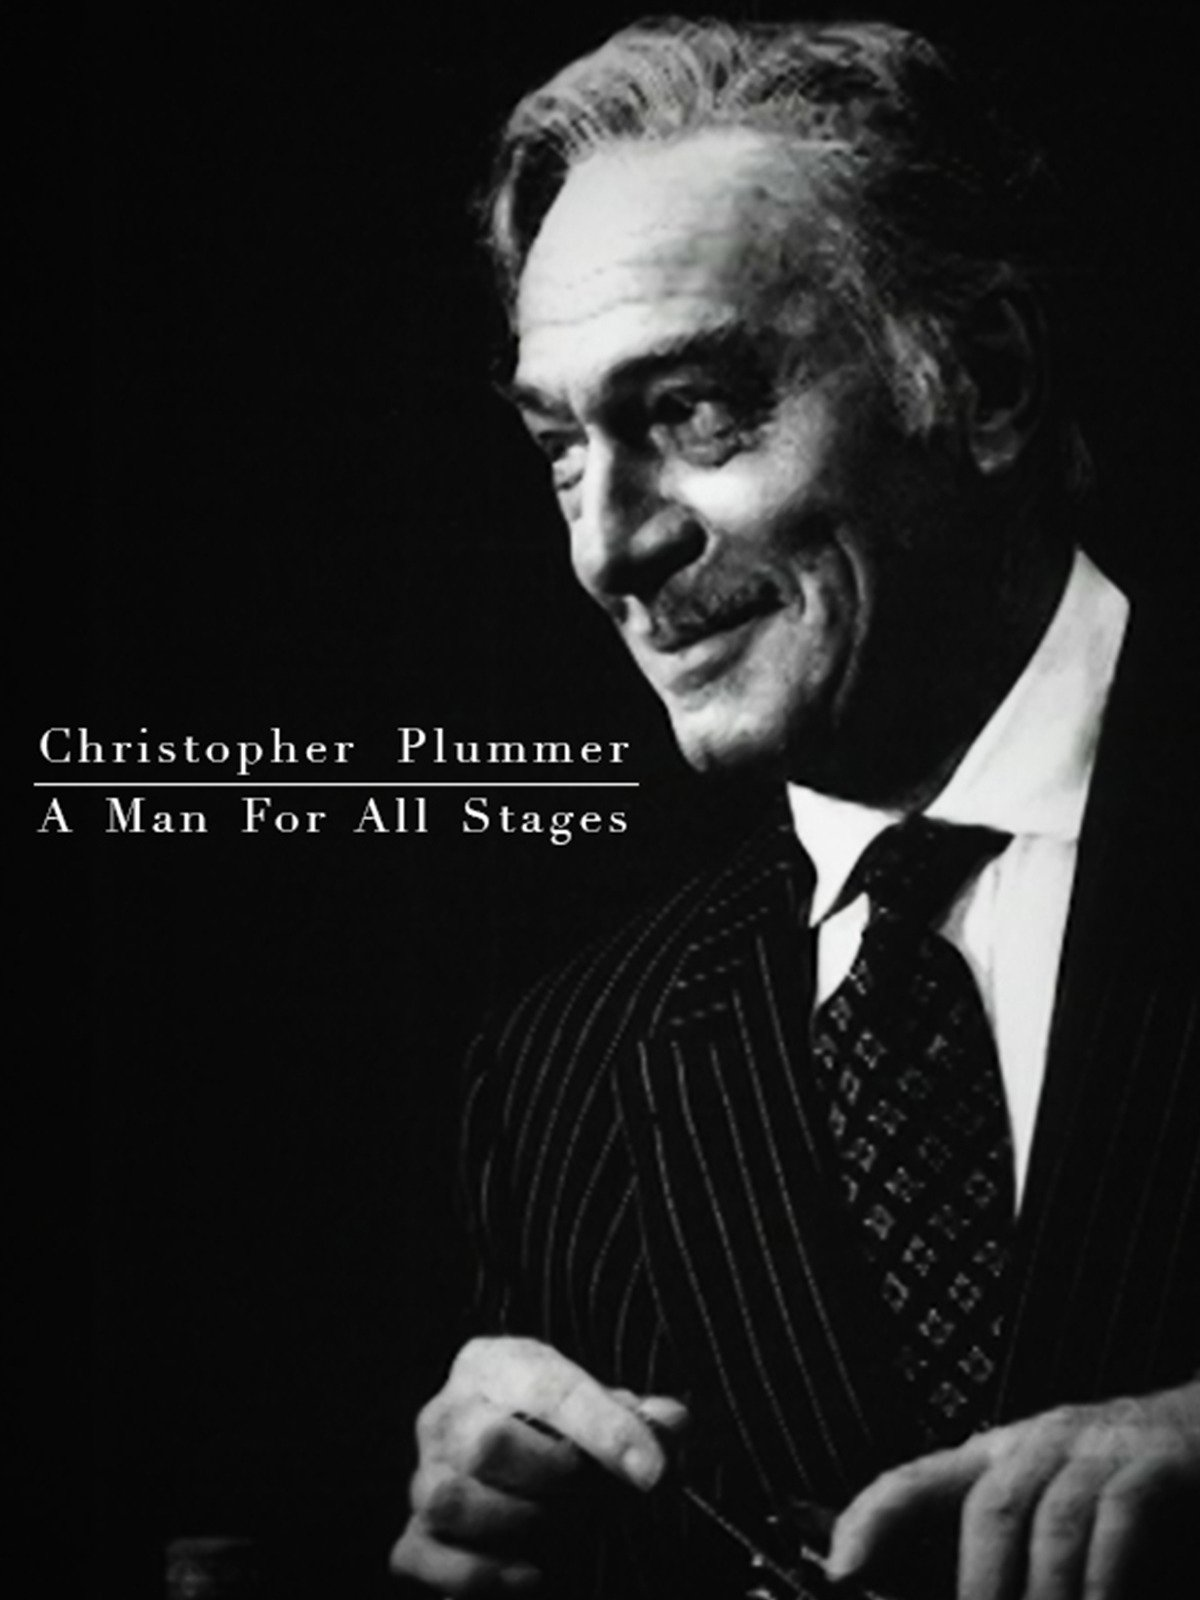 Christopher Plummer - A Man For All Stages